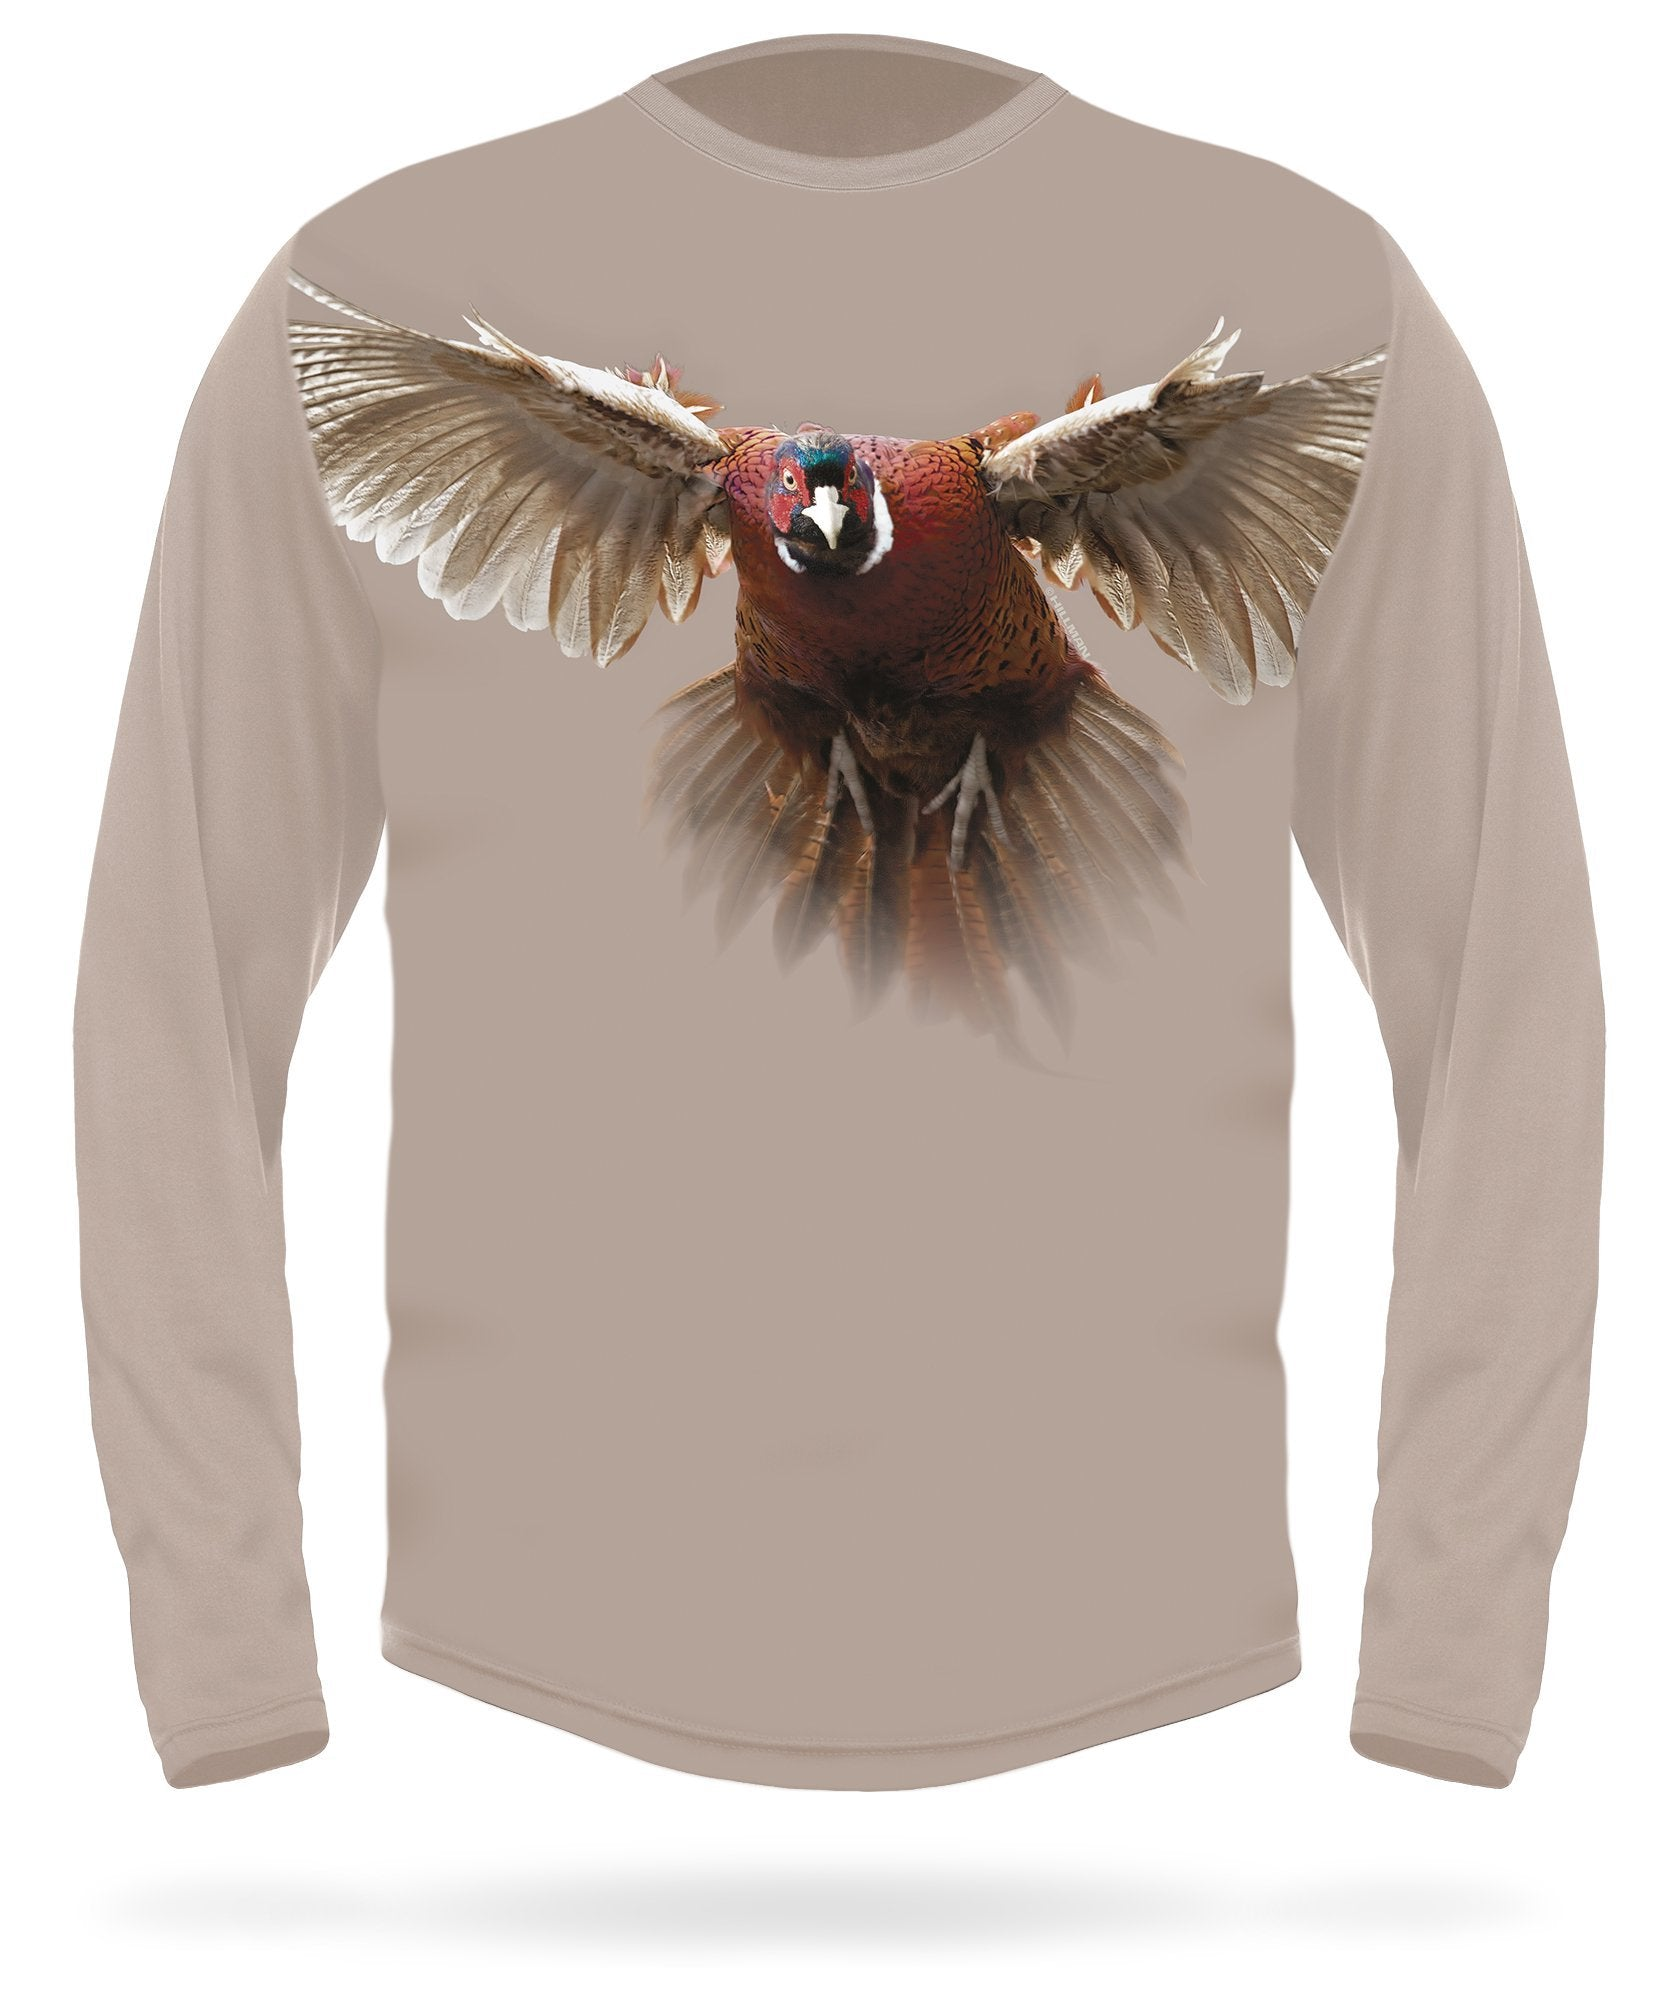 Pheasant T-shirt long sleeve - HILLMAN® hunting gear